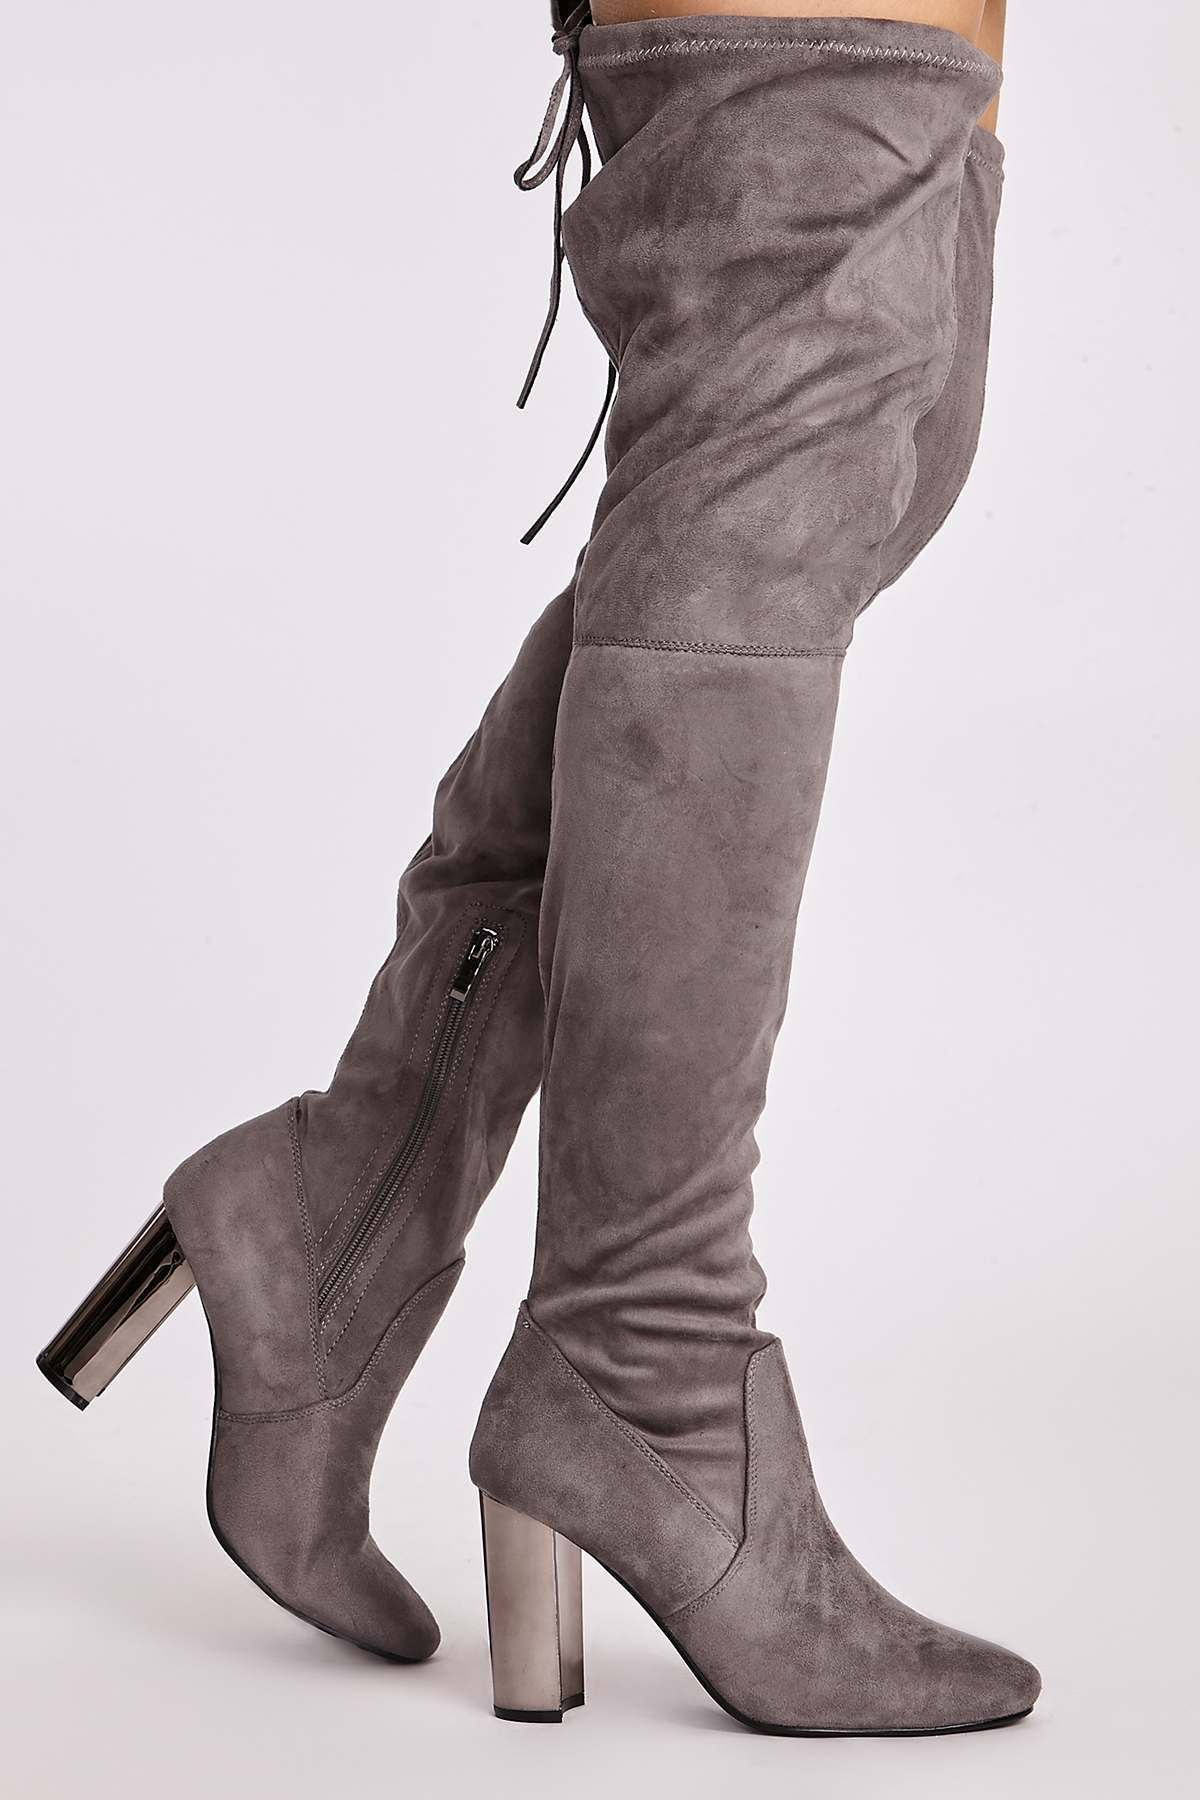 Grey Boots  Natasia Grey Faux Suede Chrome Heel Thigh High Boots